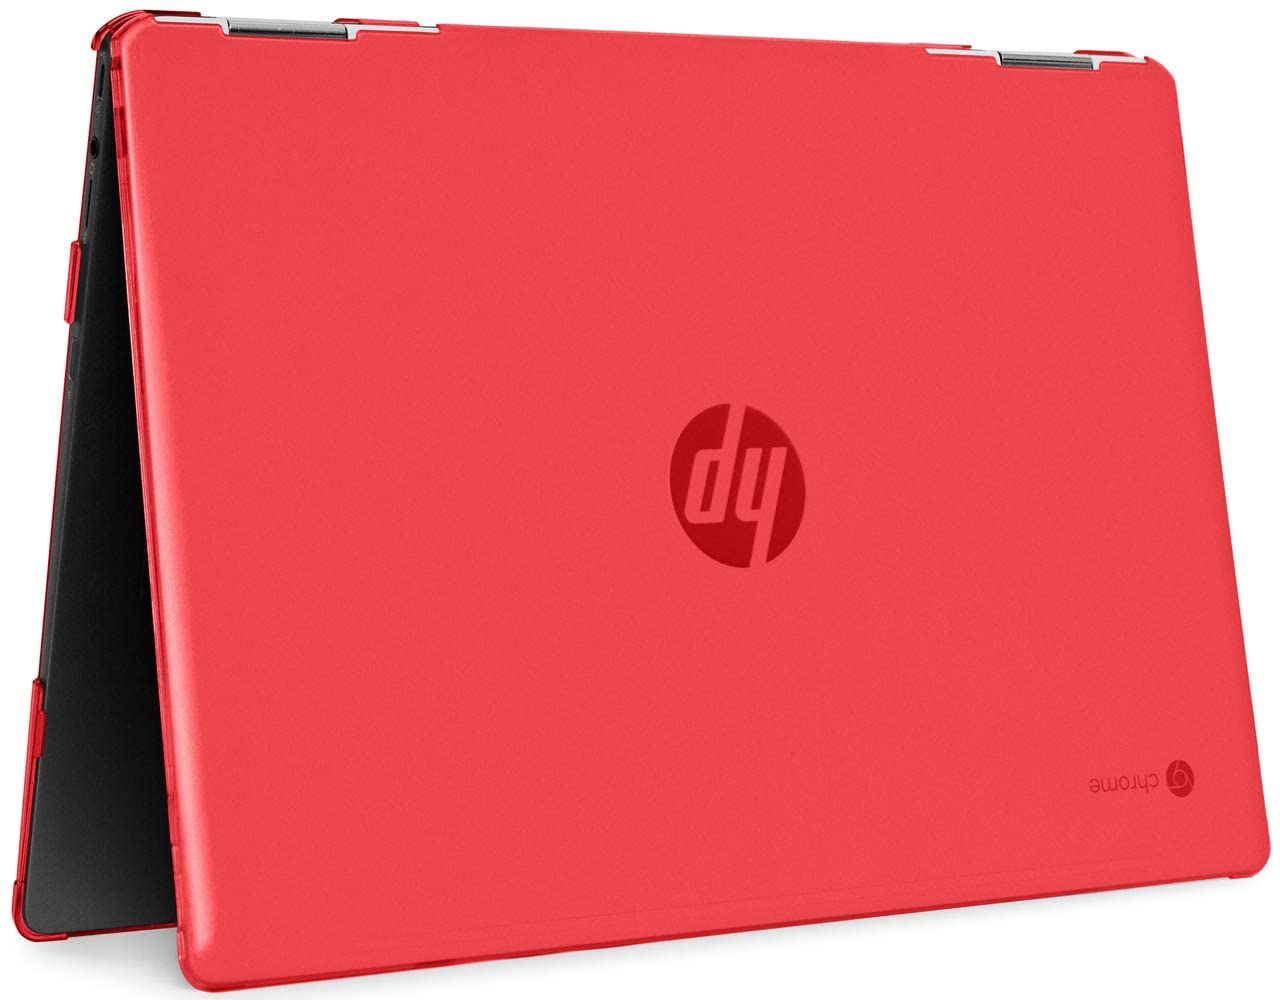 "mCover Hard Shell Case for 14"" HP Chromebook X360 14-DA0000 Series laptops (NOT Compatible with Other HP Chromebook & Windows laptops) (Red)"